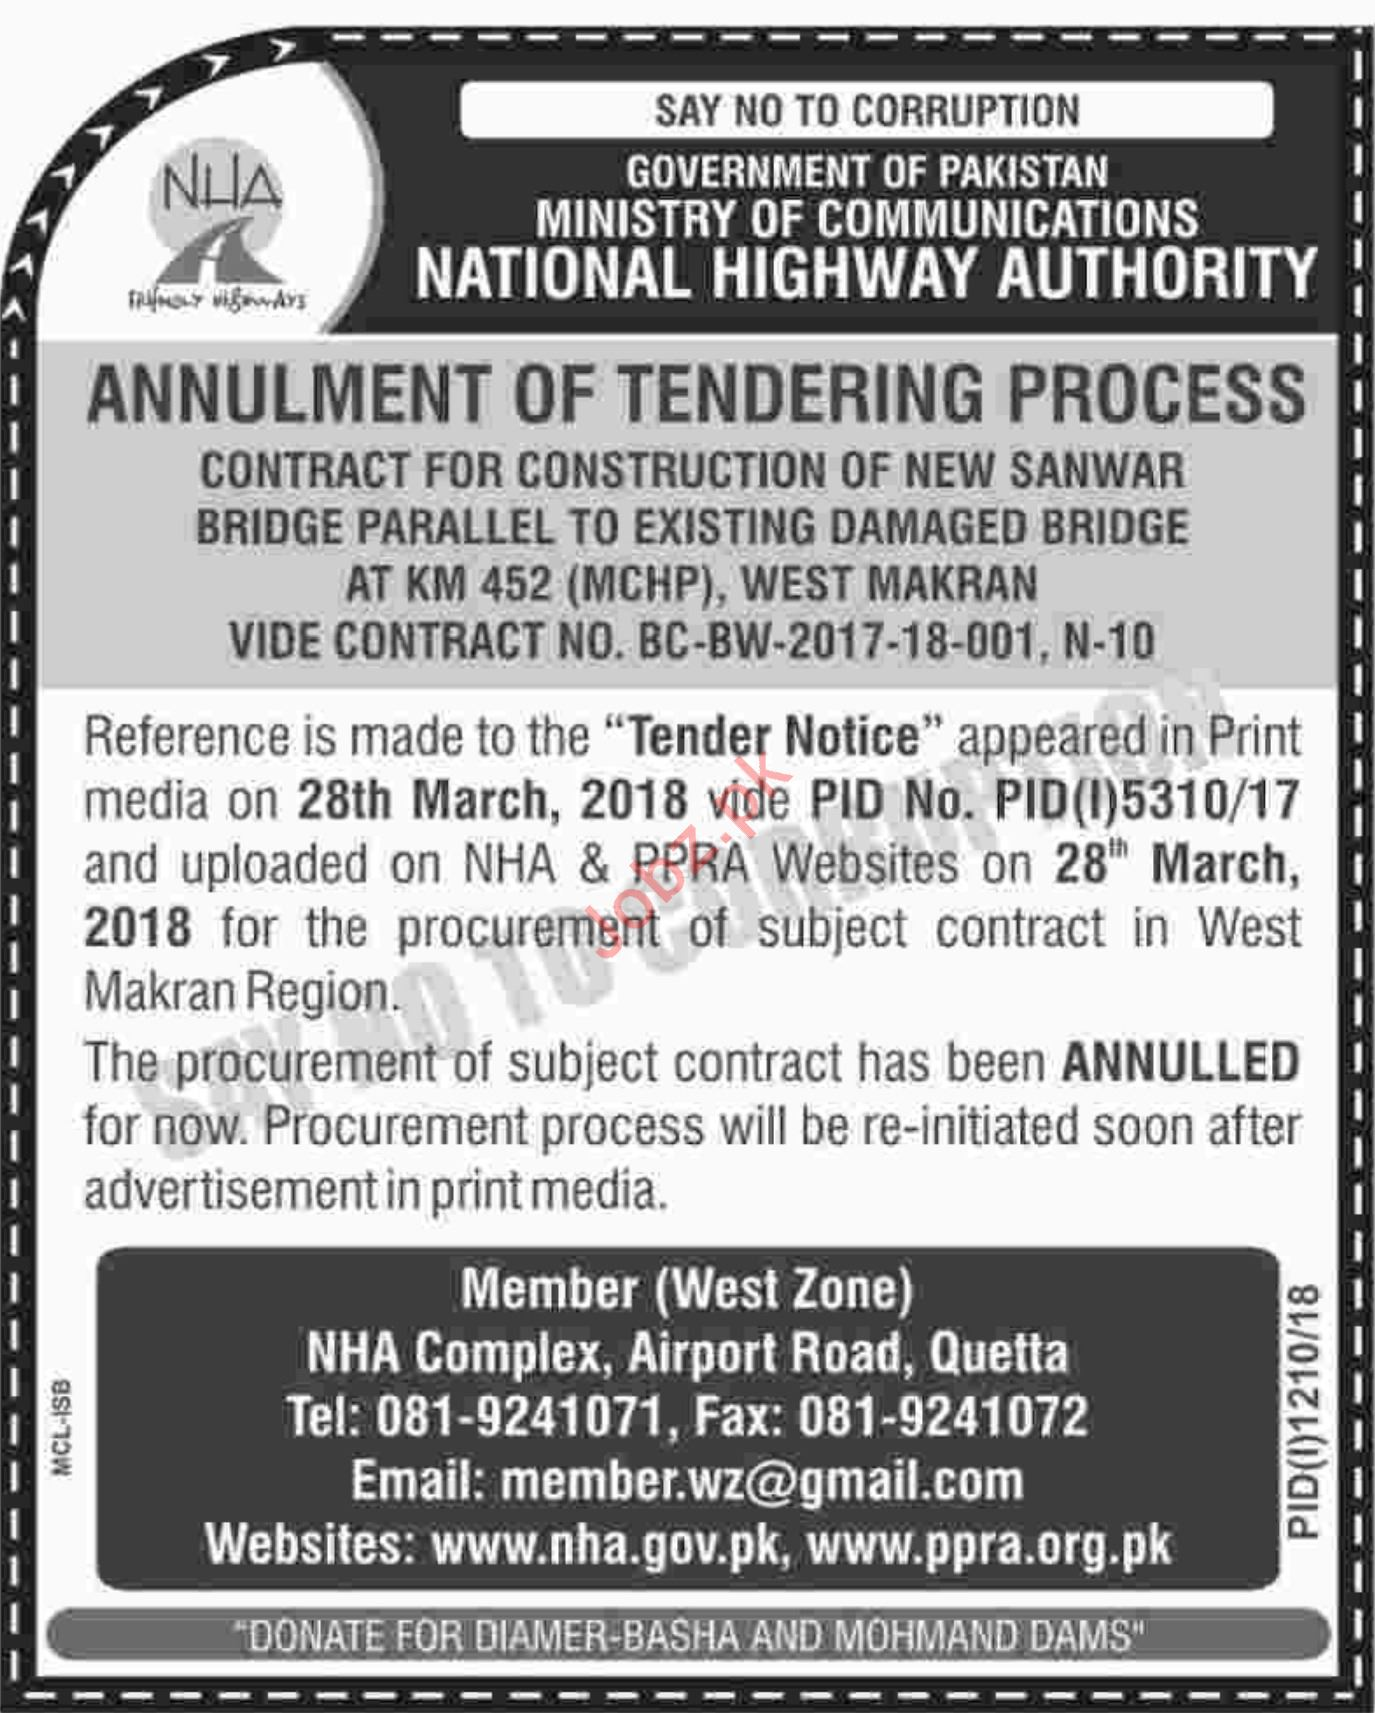 NHA Quetta Tender for Construction of New Bridge 2019